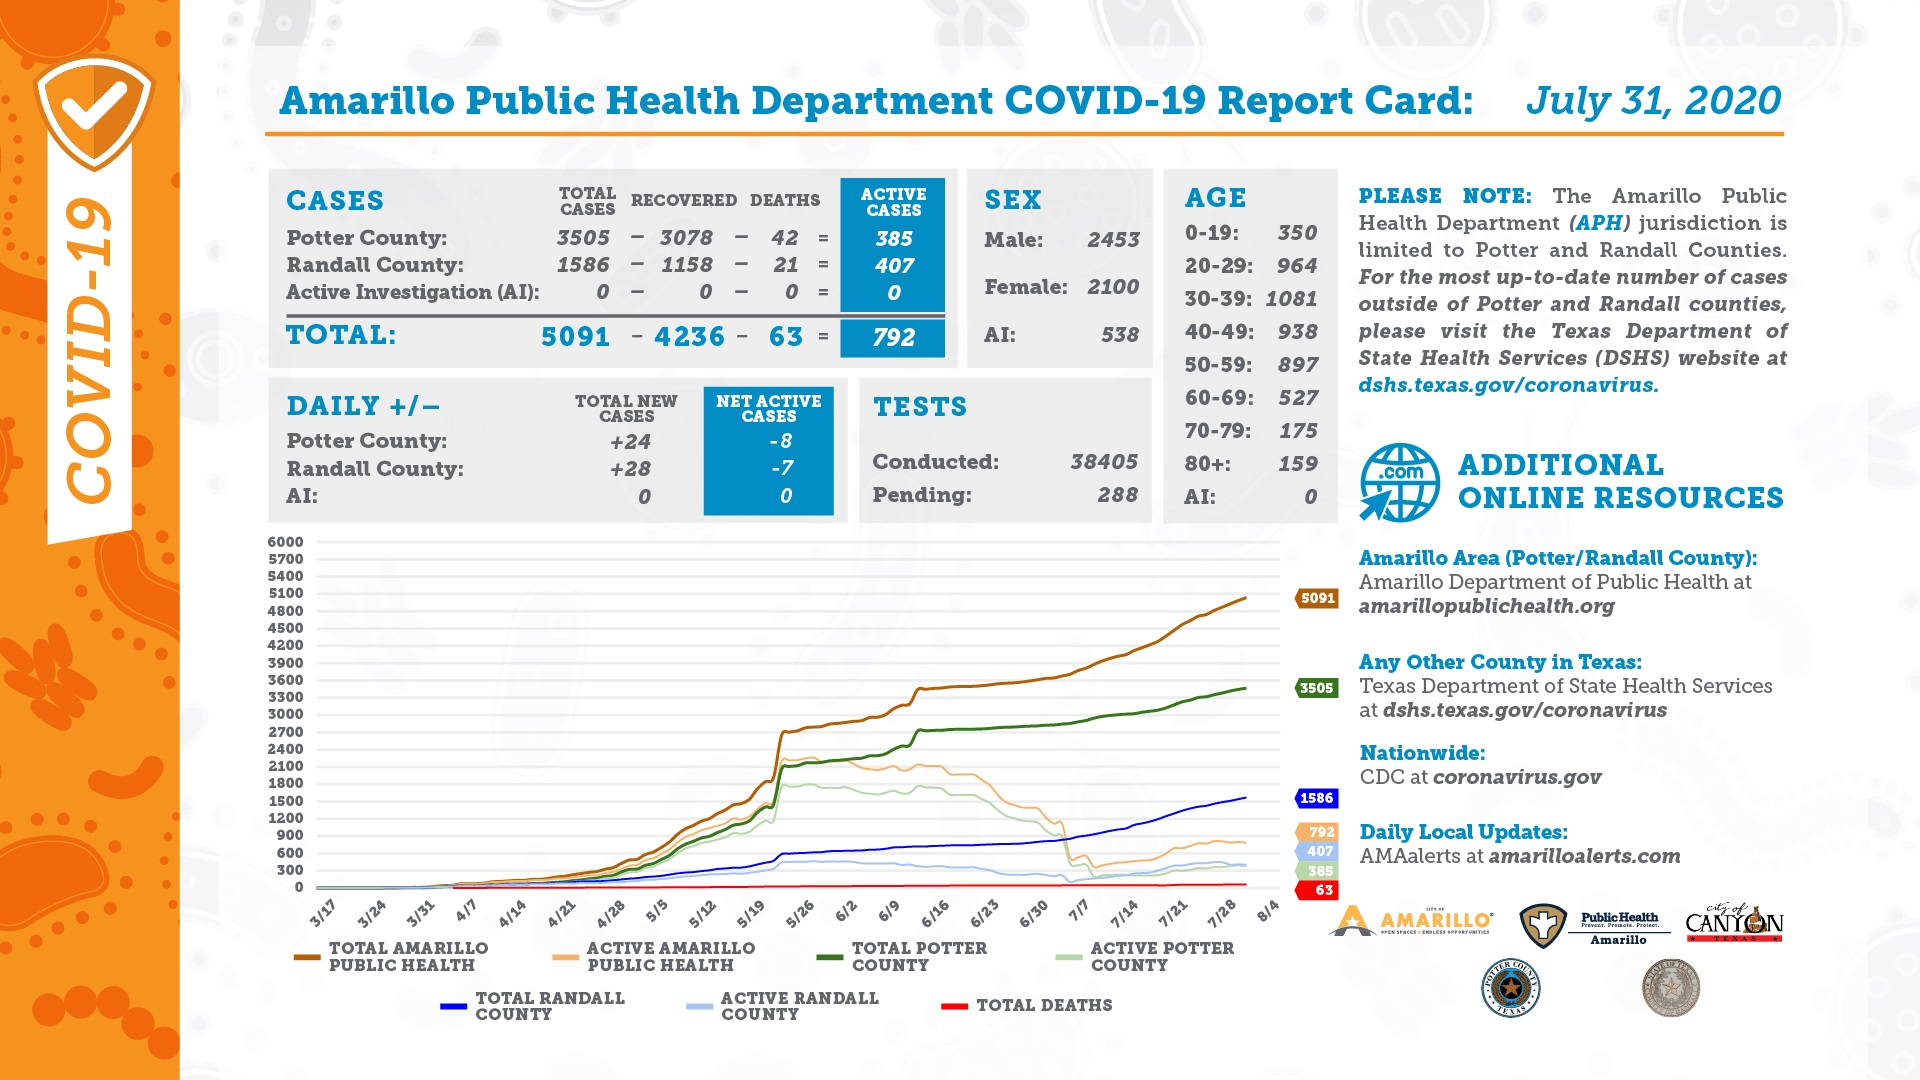 APHD COVID-19 Report Card for Friday 07 31 2020